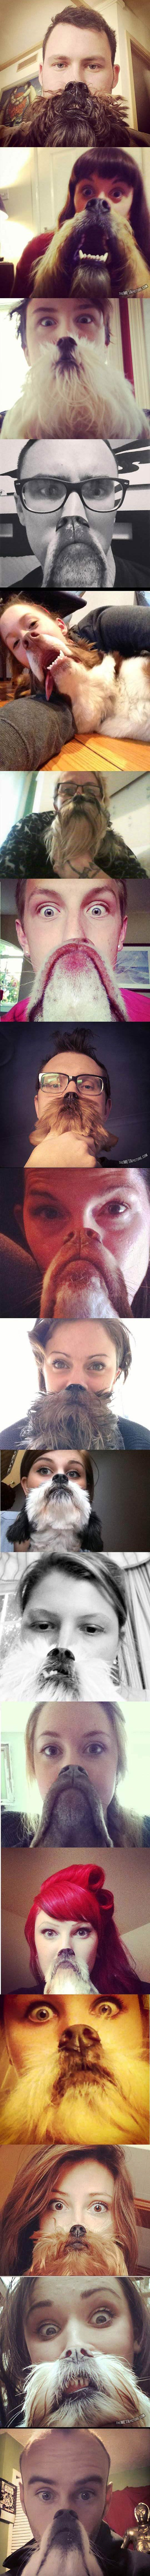 Some of the epic dog beards collection